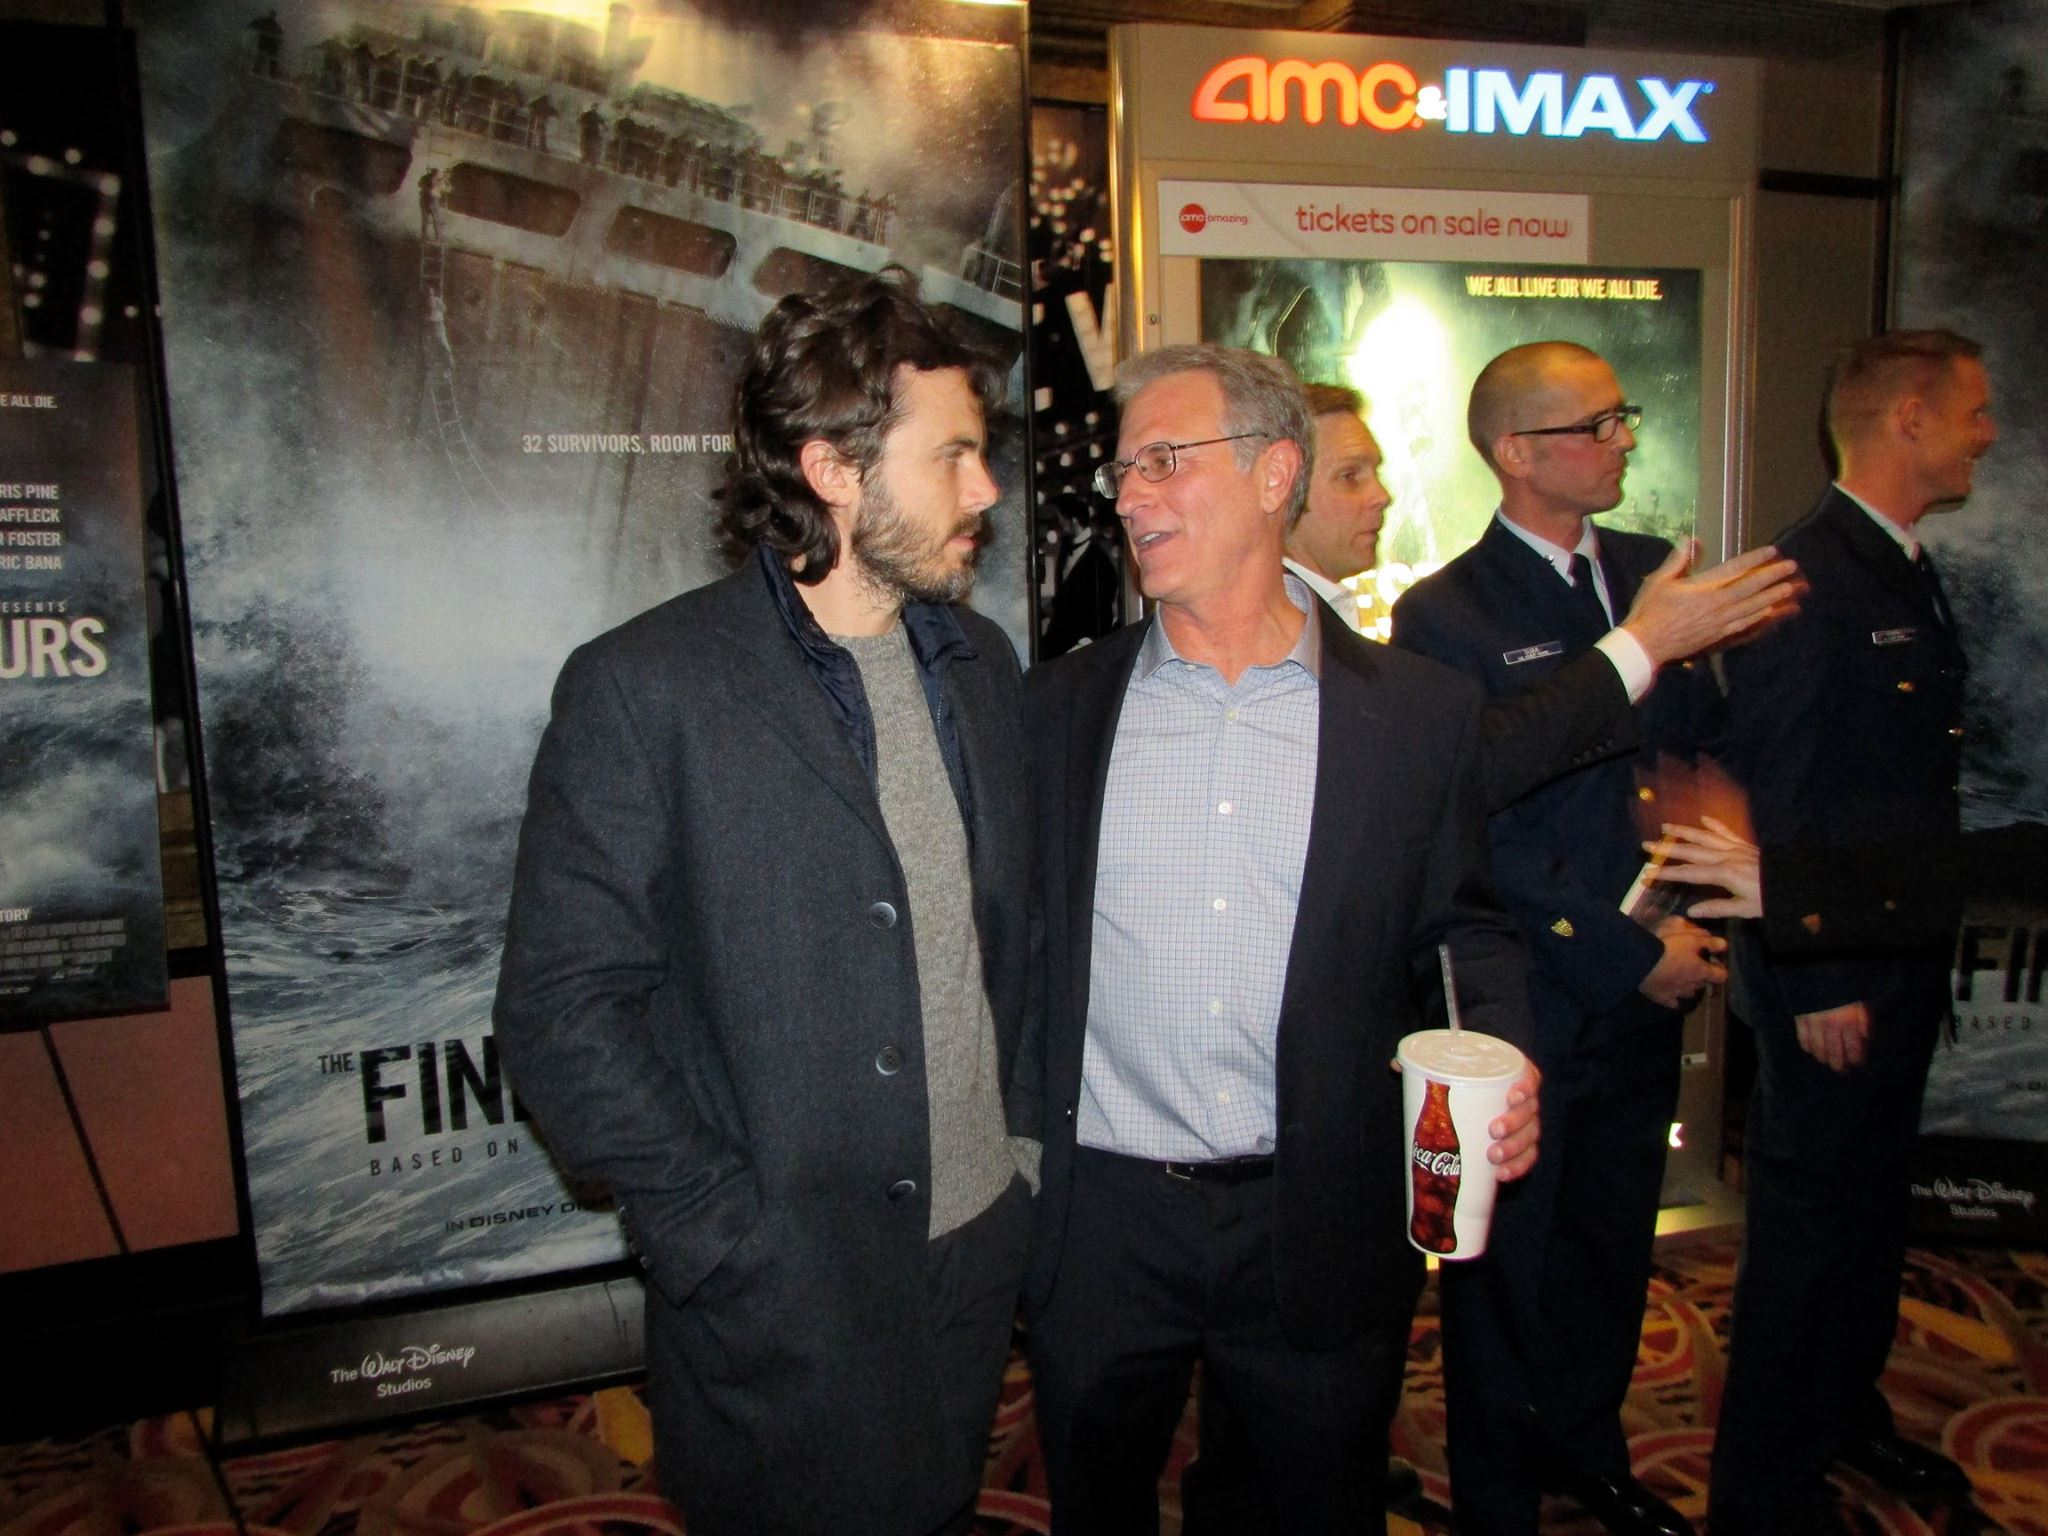 with Finest Hours star Casey Affleck